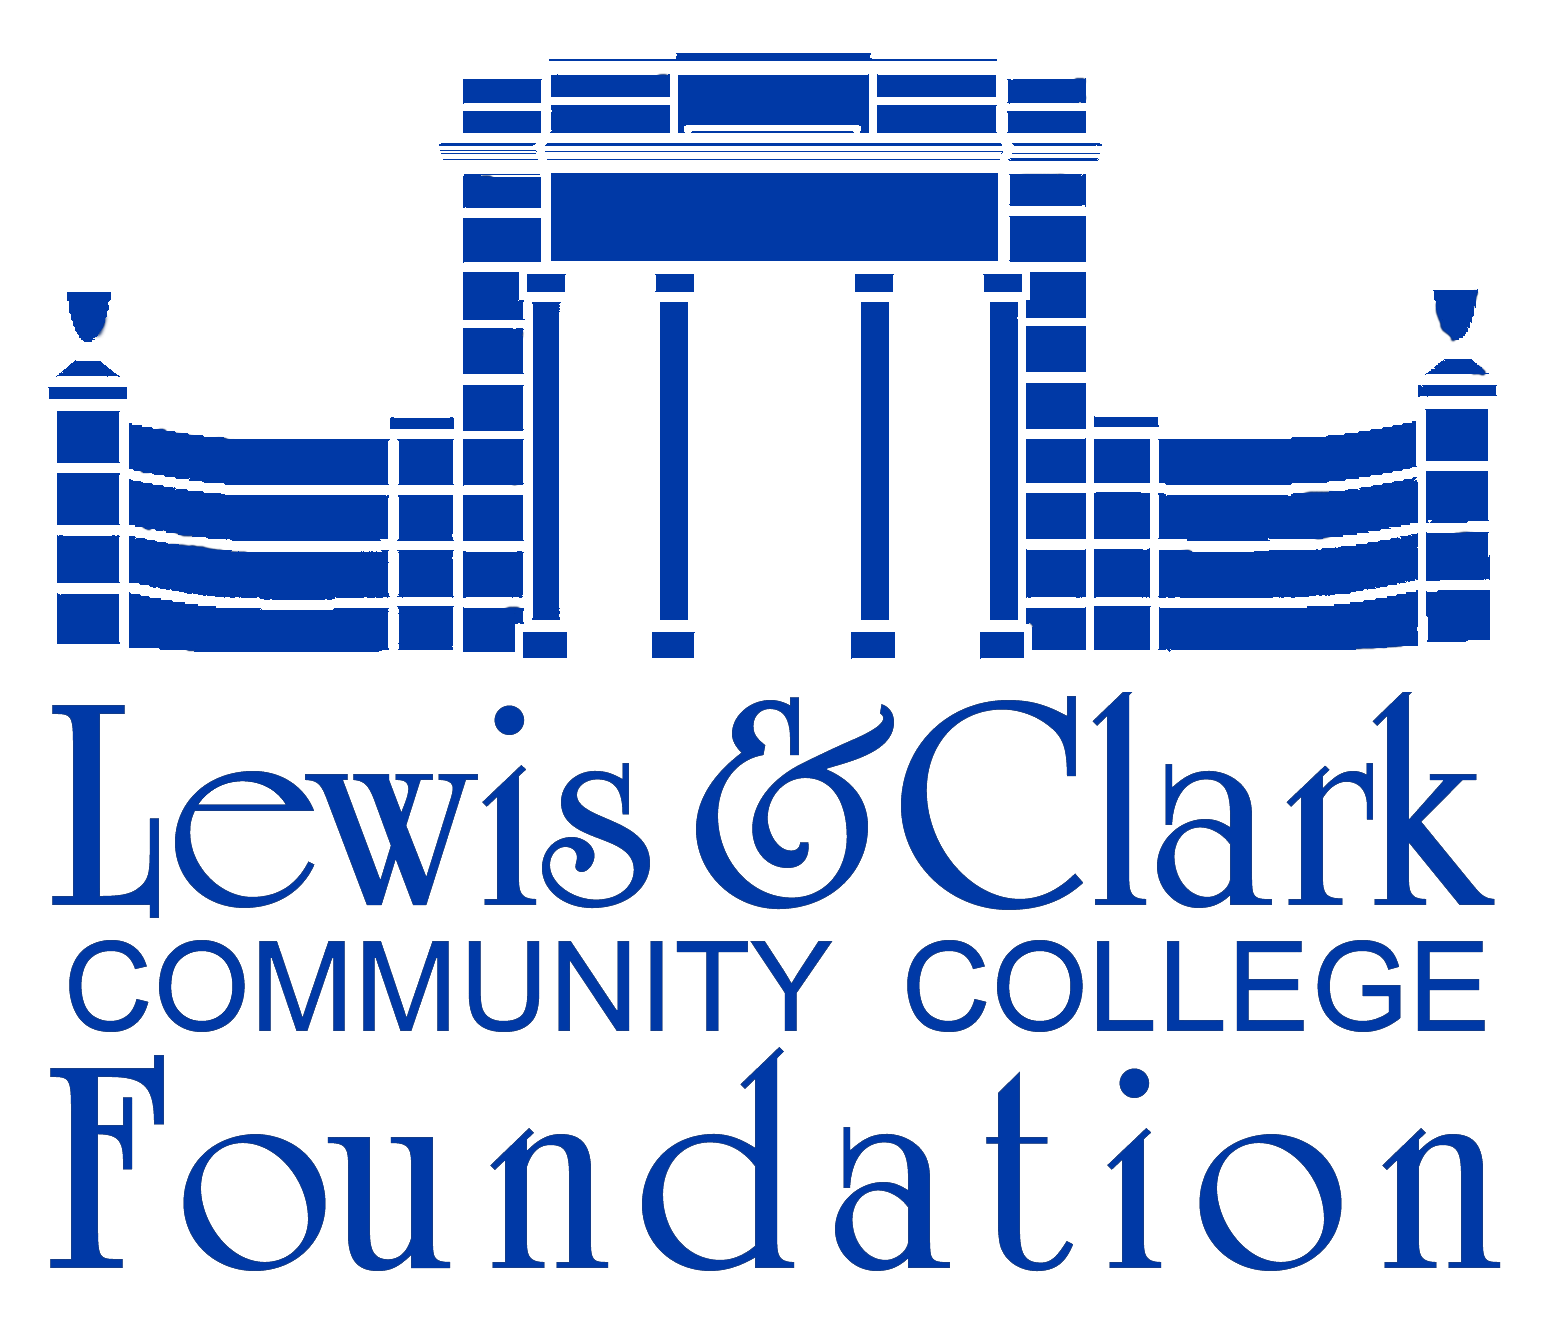 Lewis and Clark Community College Foundation